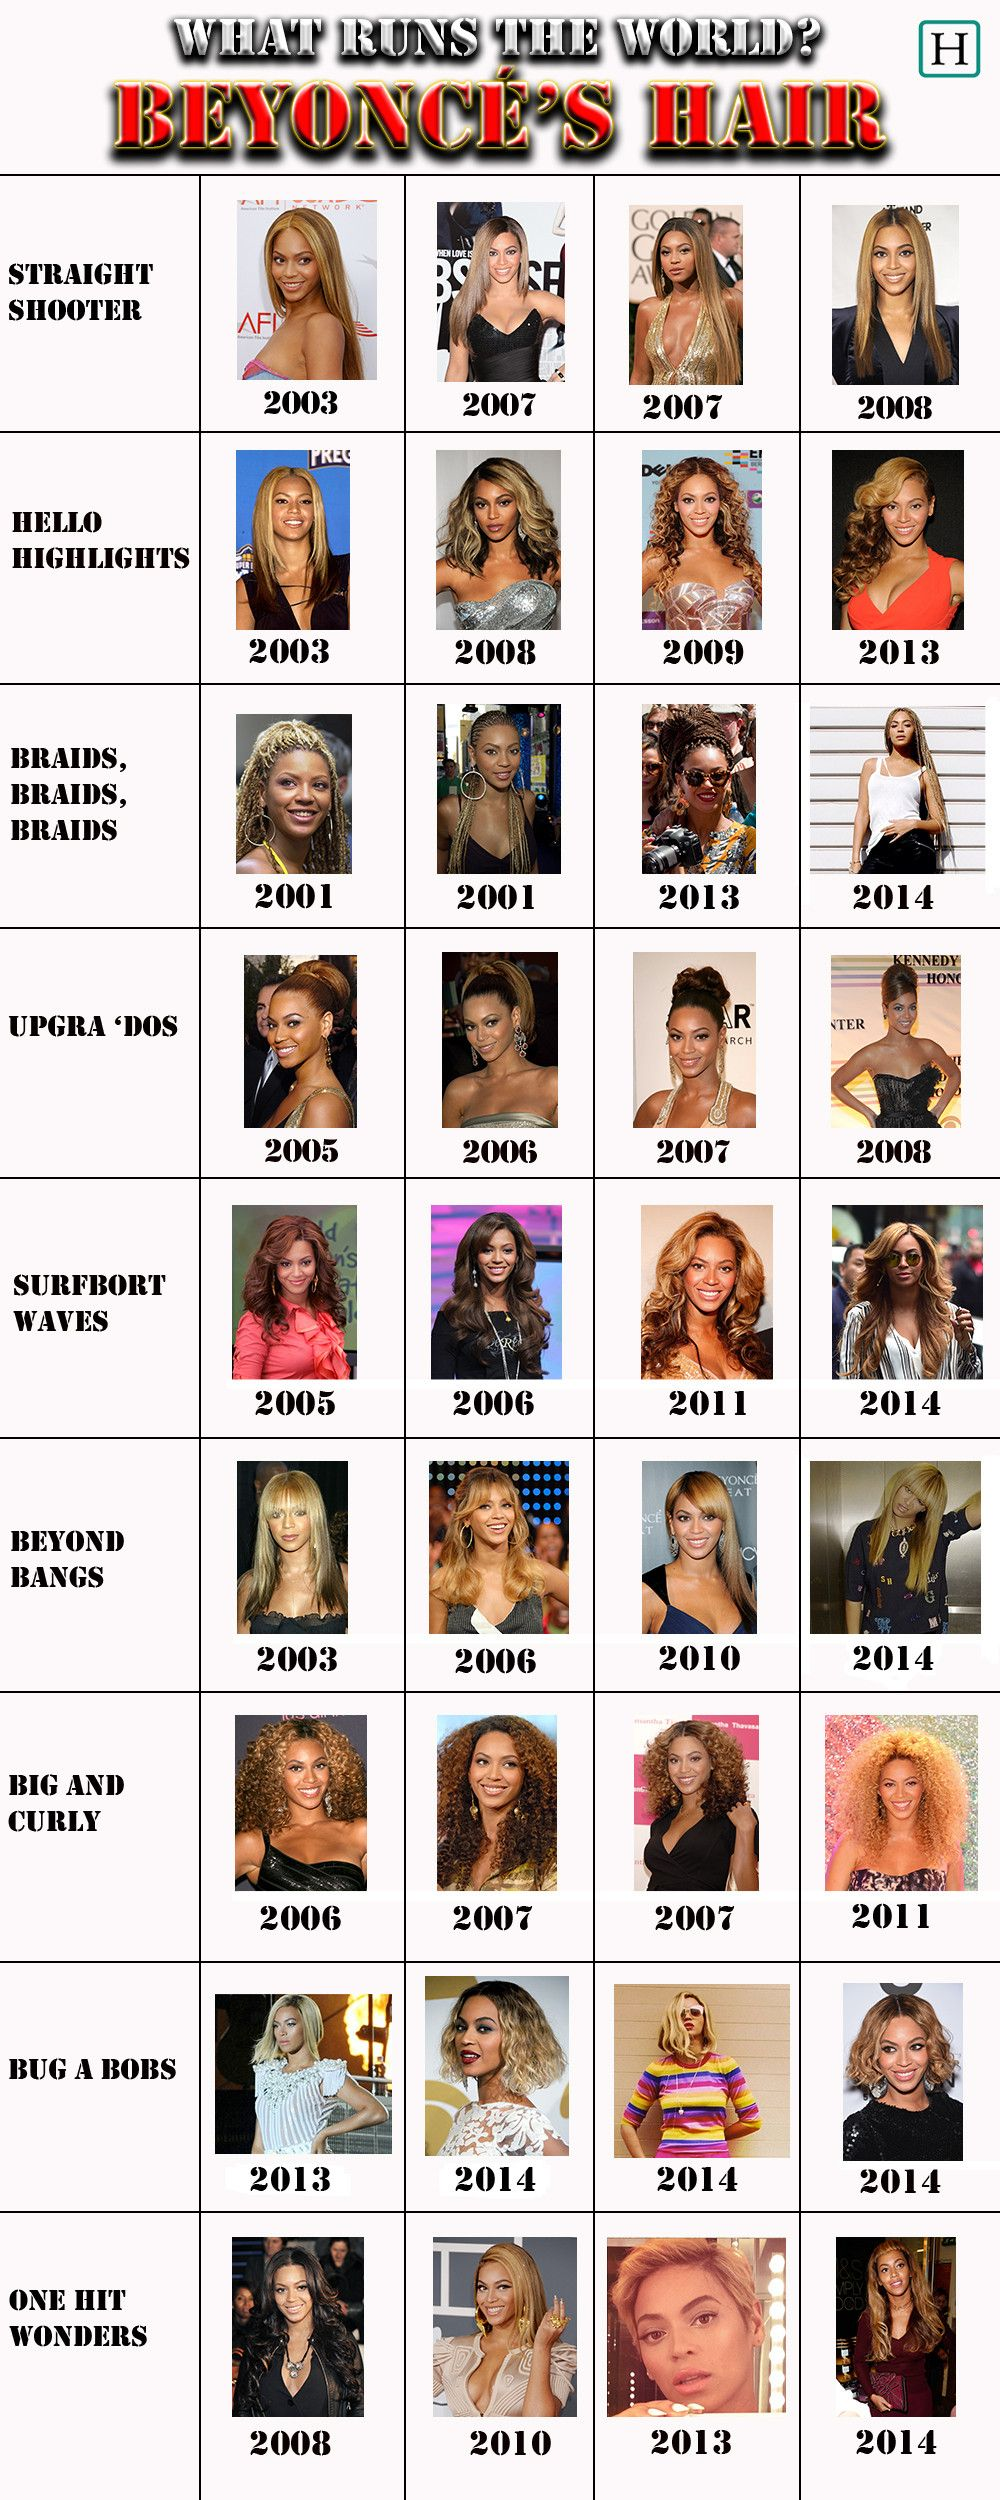 a look at beyonce's different hairstyles throughout the